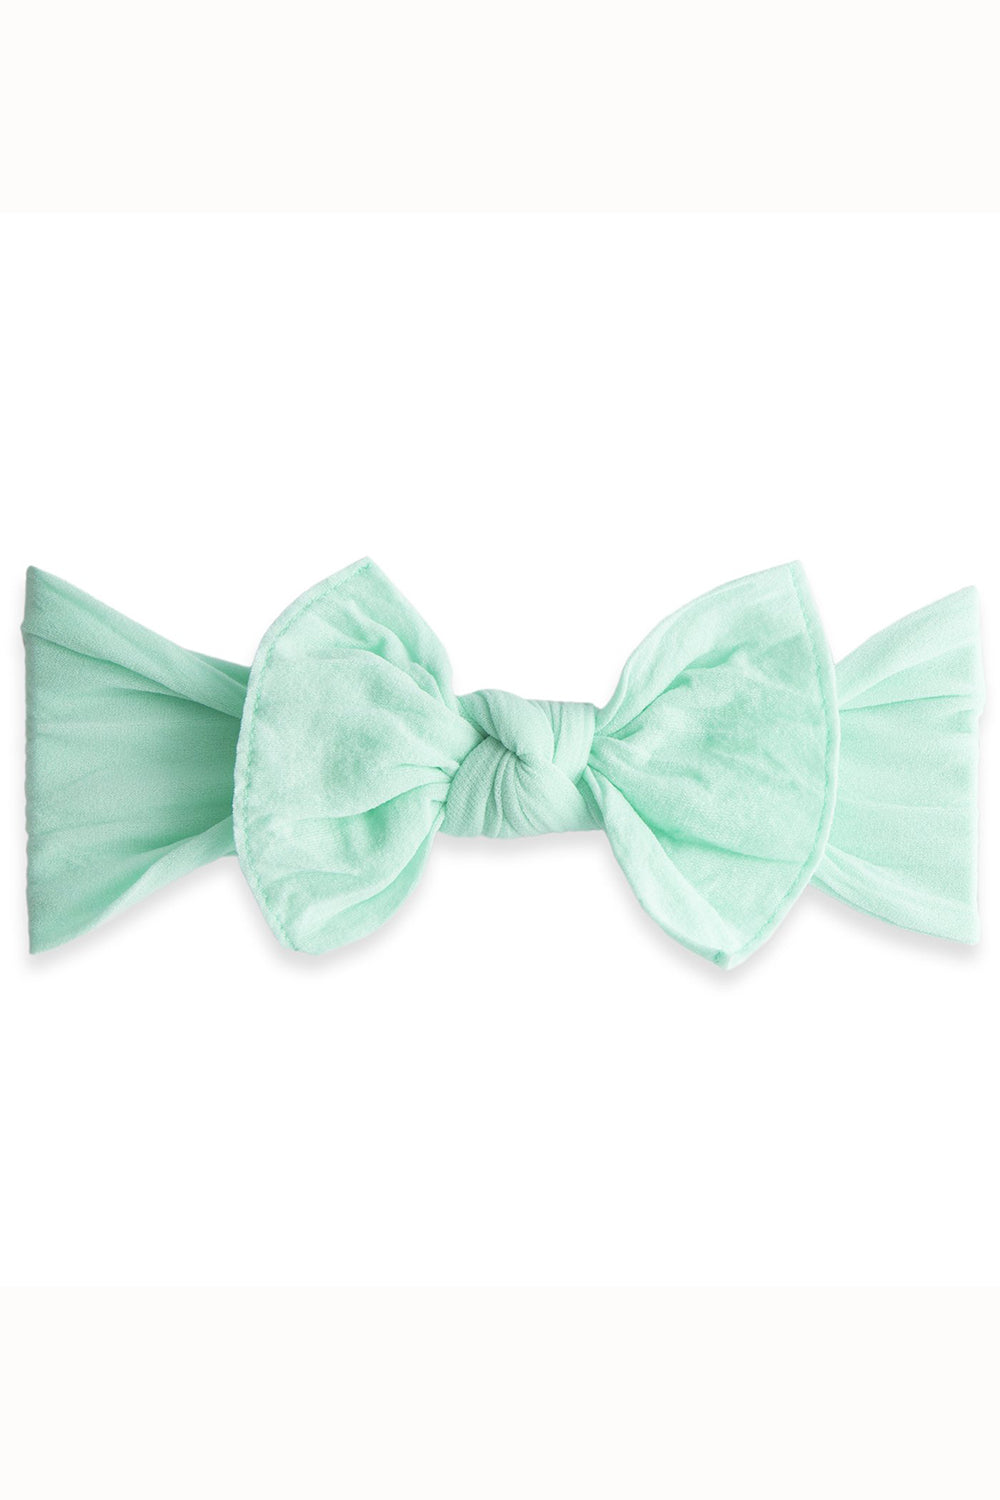 Baby Bow - Mint